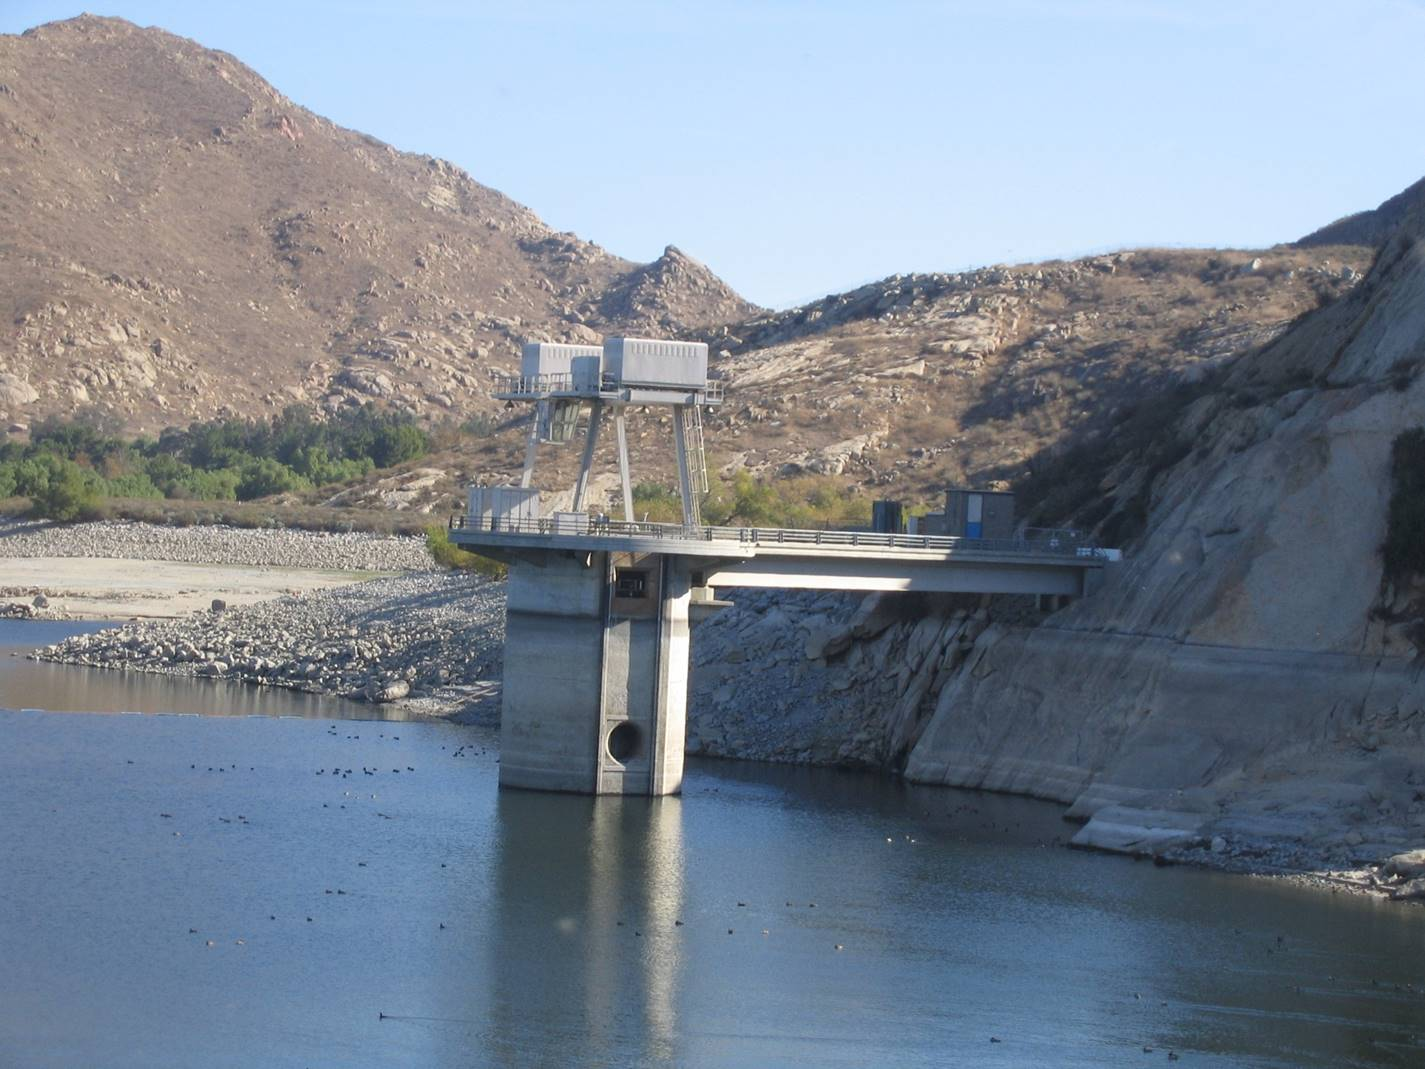 Perris Dam Outlet Tower